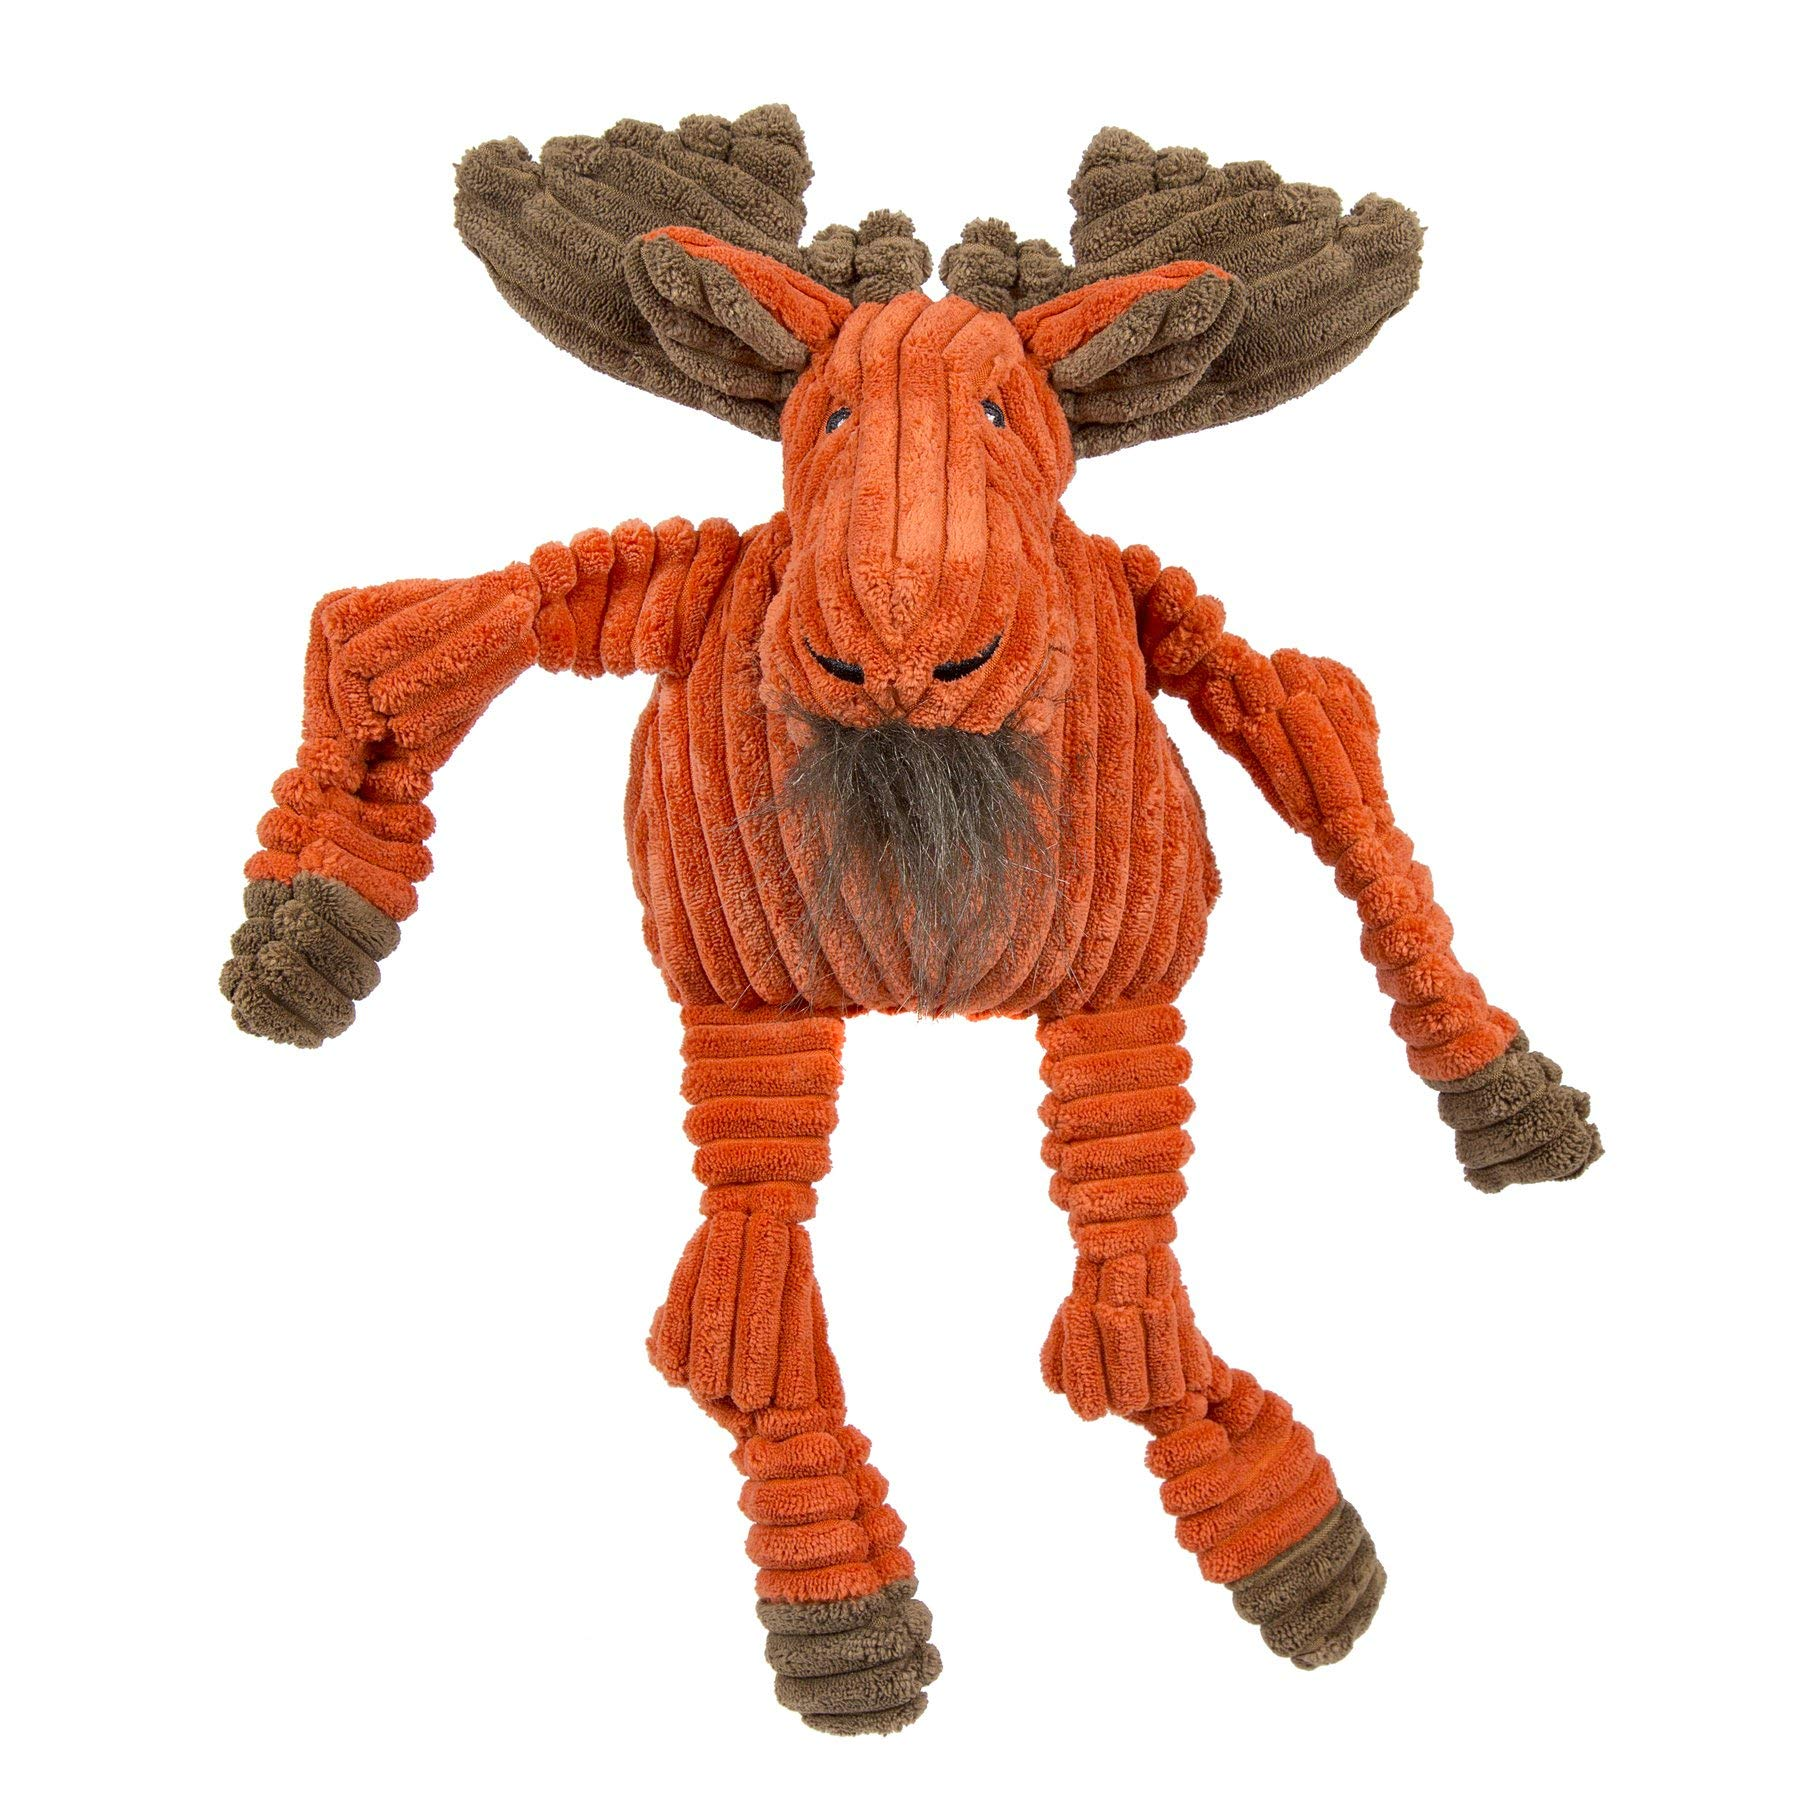 HuggleHounds Plush Corduroy Durable Squeaky Knottie, Dog Toy, Great Dog Toys  for Aggressive Chewers, Moose, Large by HuggleHounds